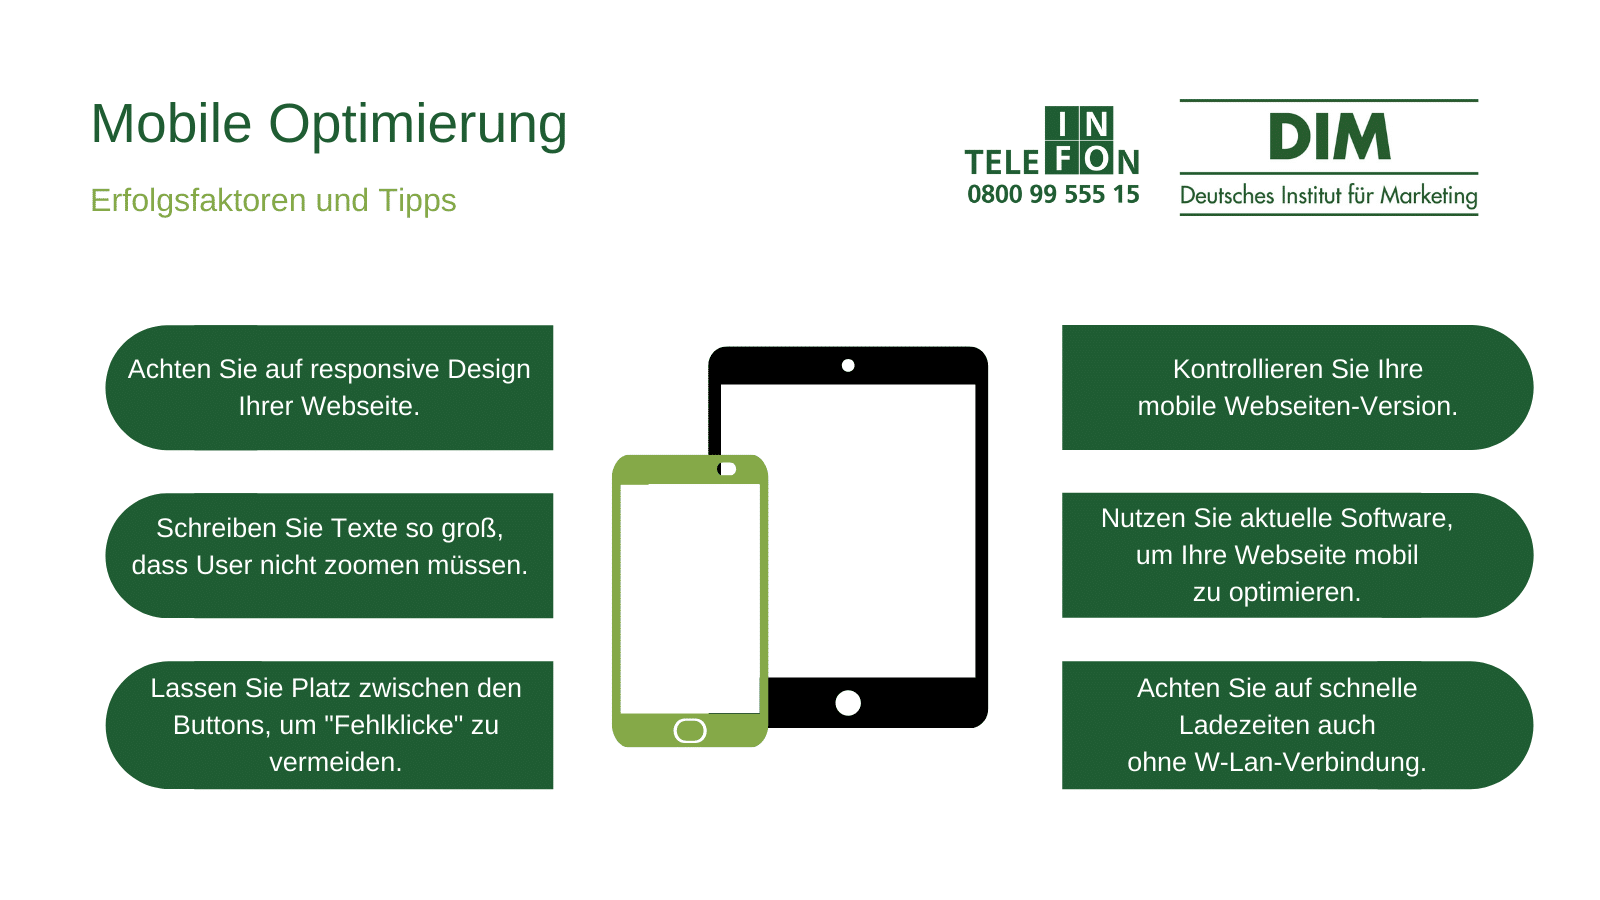 Mobile Optimierung_Tipps